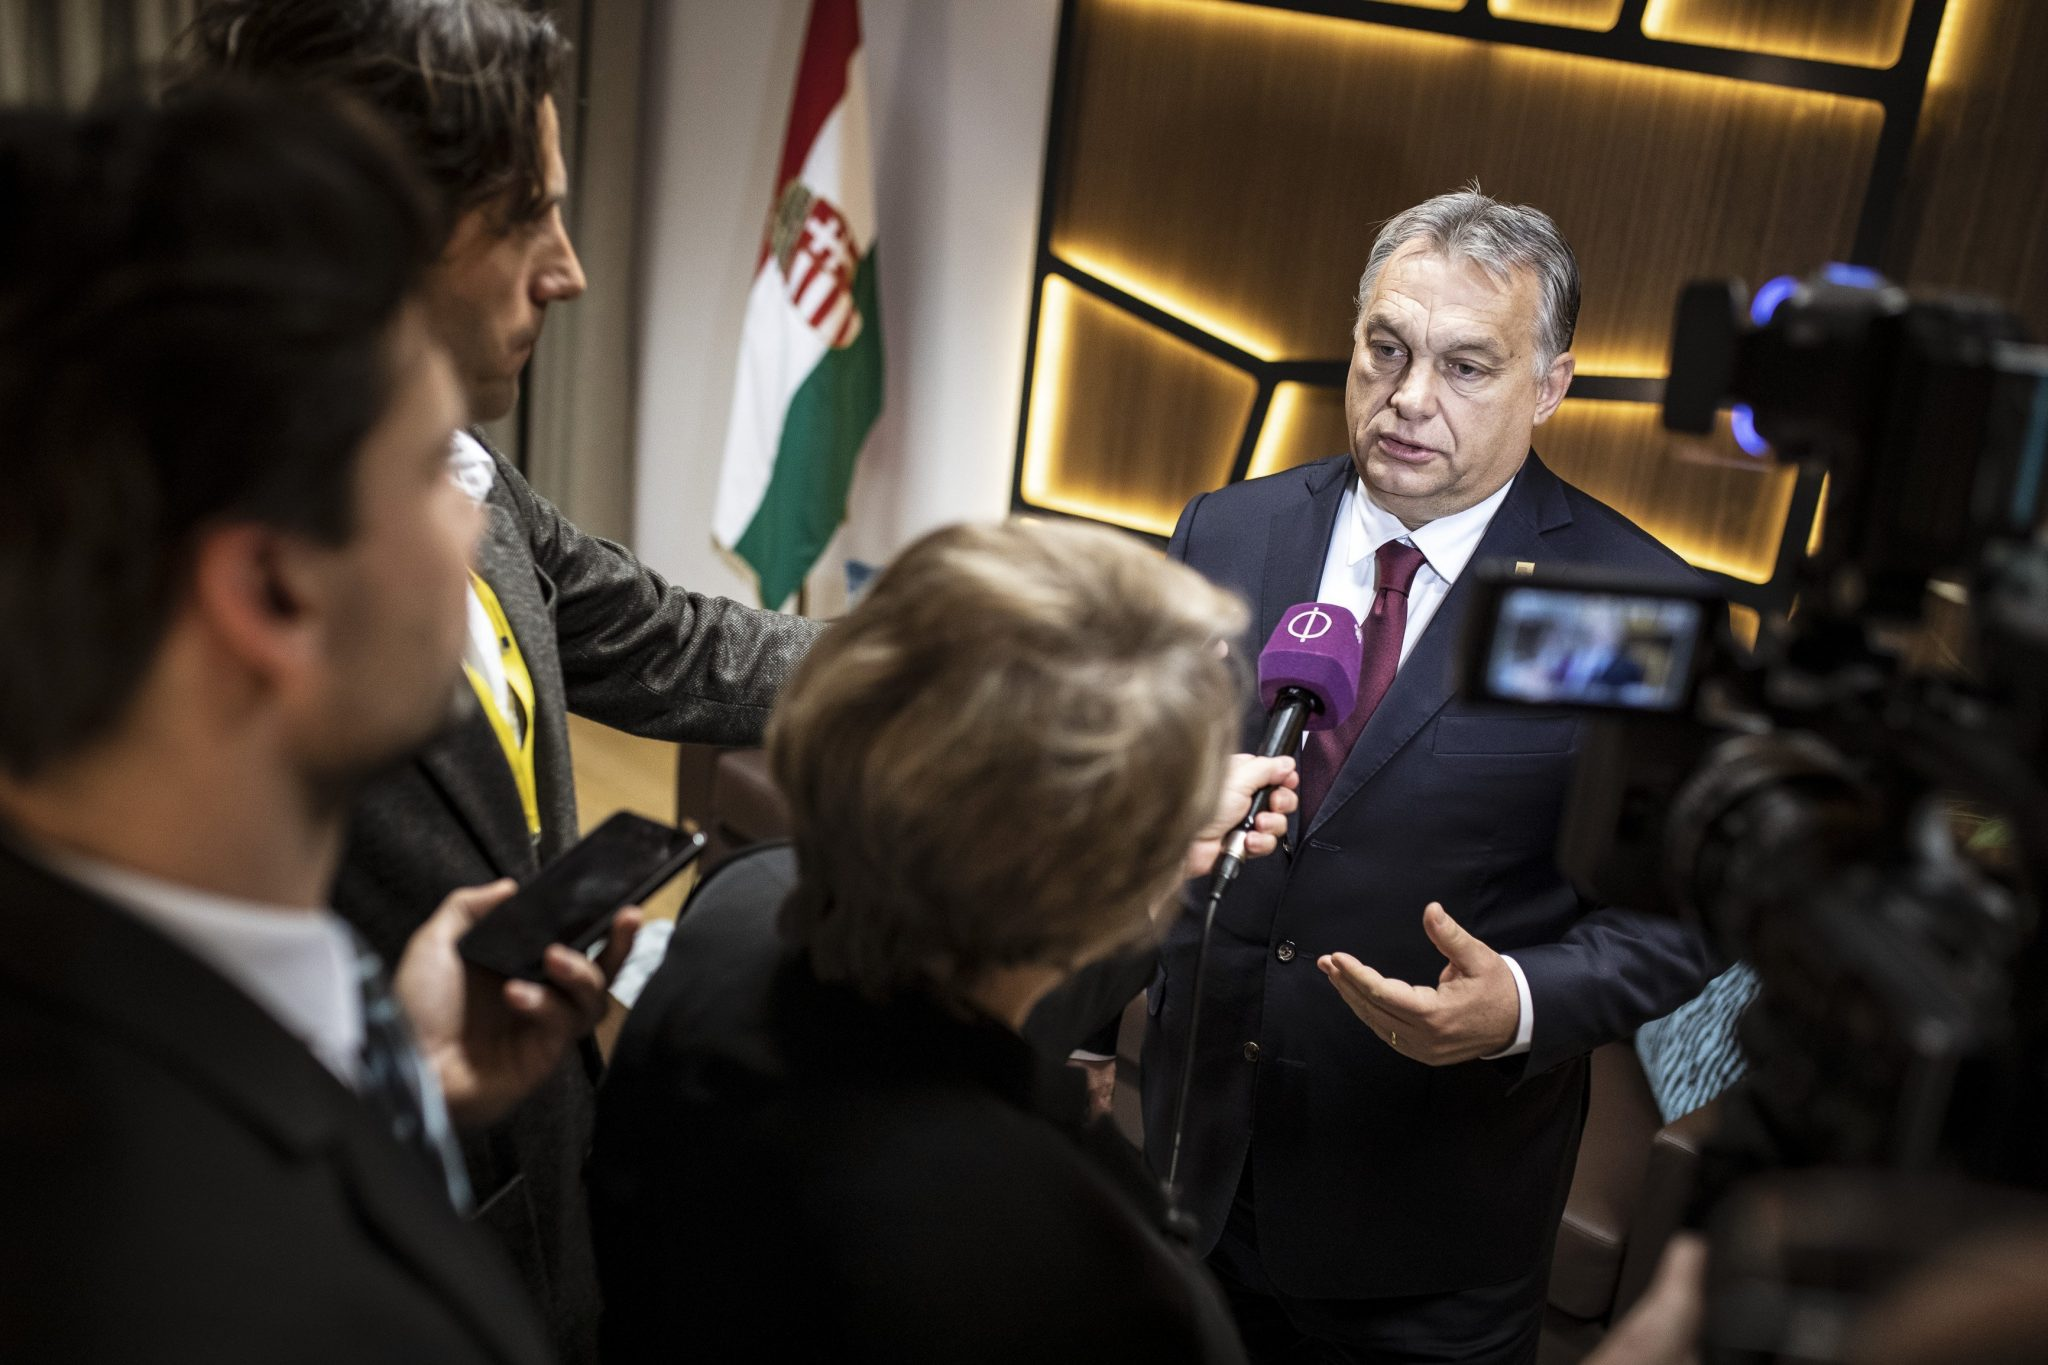 Heated Debate at EU Summit Over LGBTQ Aspects of Hungary's Child Protection Bill